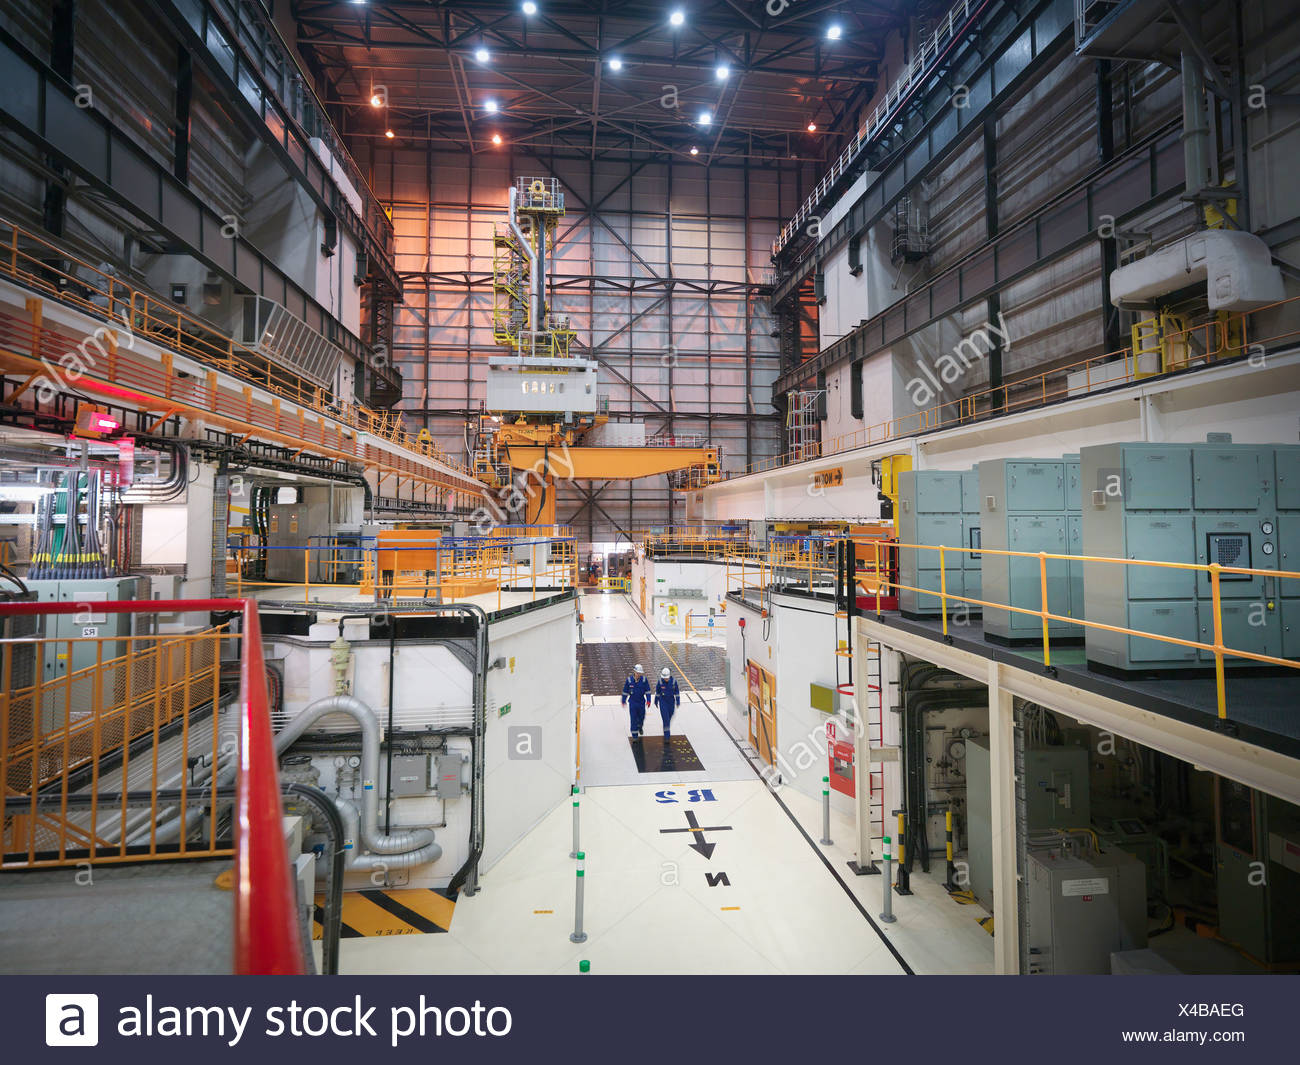 Interior view of reactor hall in nuclear power station - Stock Image